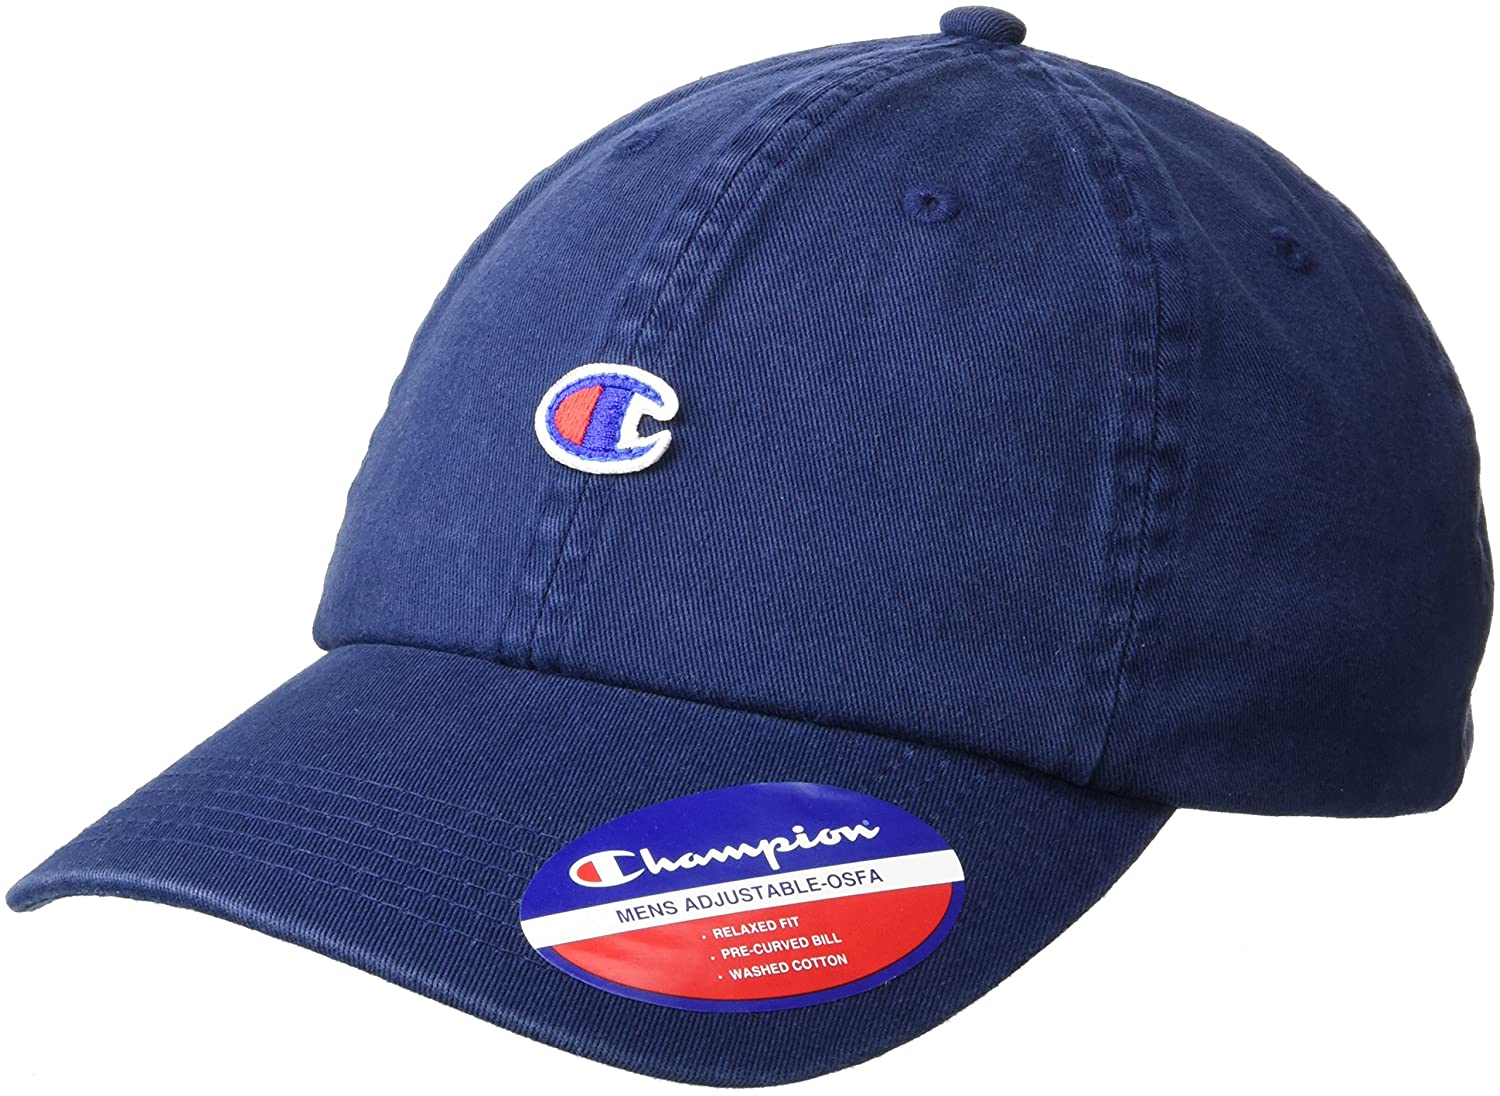 Champion Men's Father Dad Adjustable Cap Black OS CH2007-001